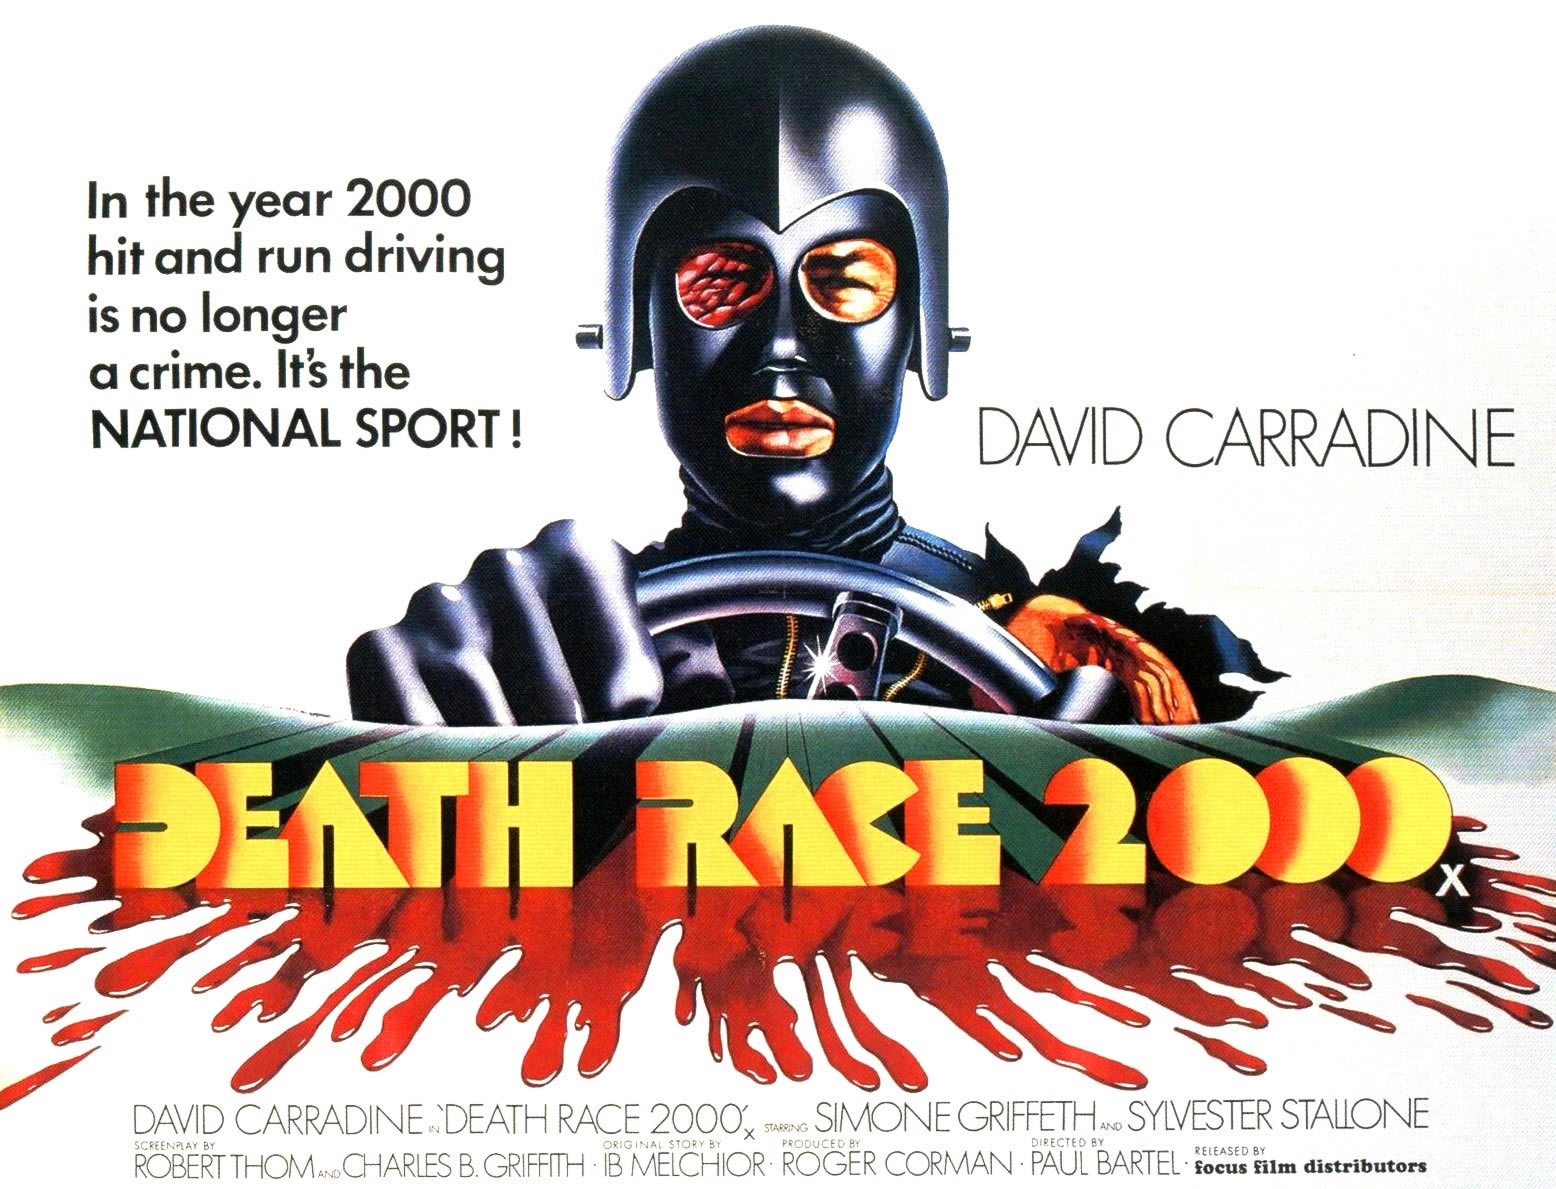 death race 2000 ii - sci fi b movie posters